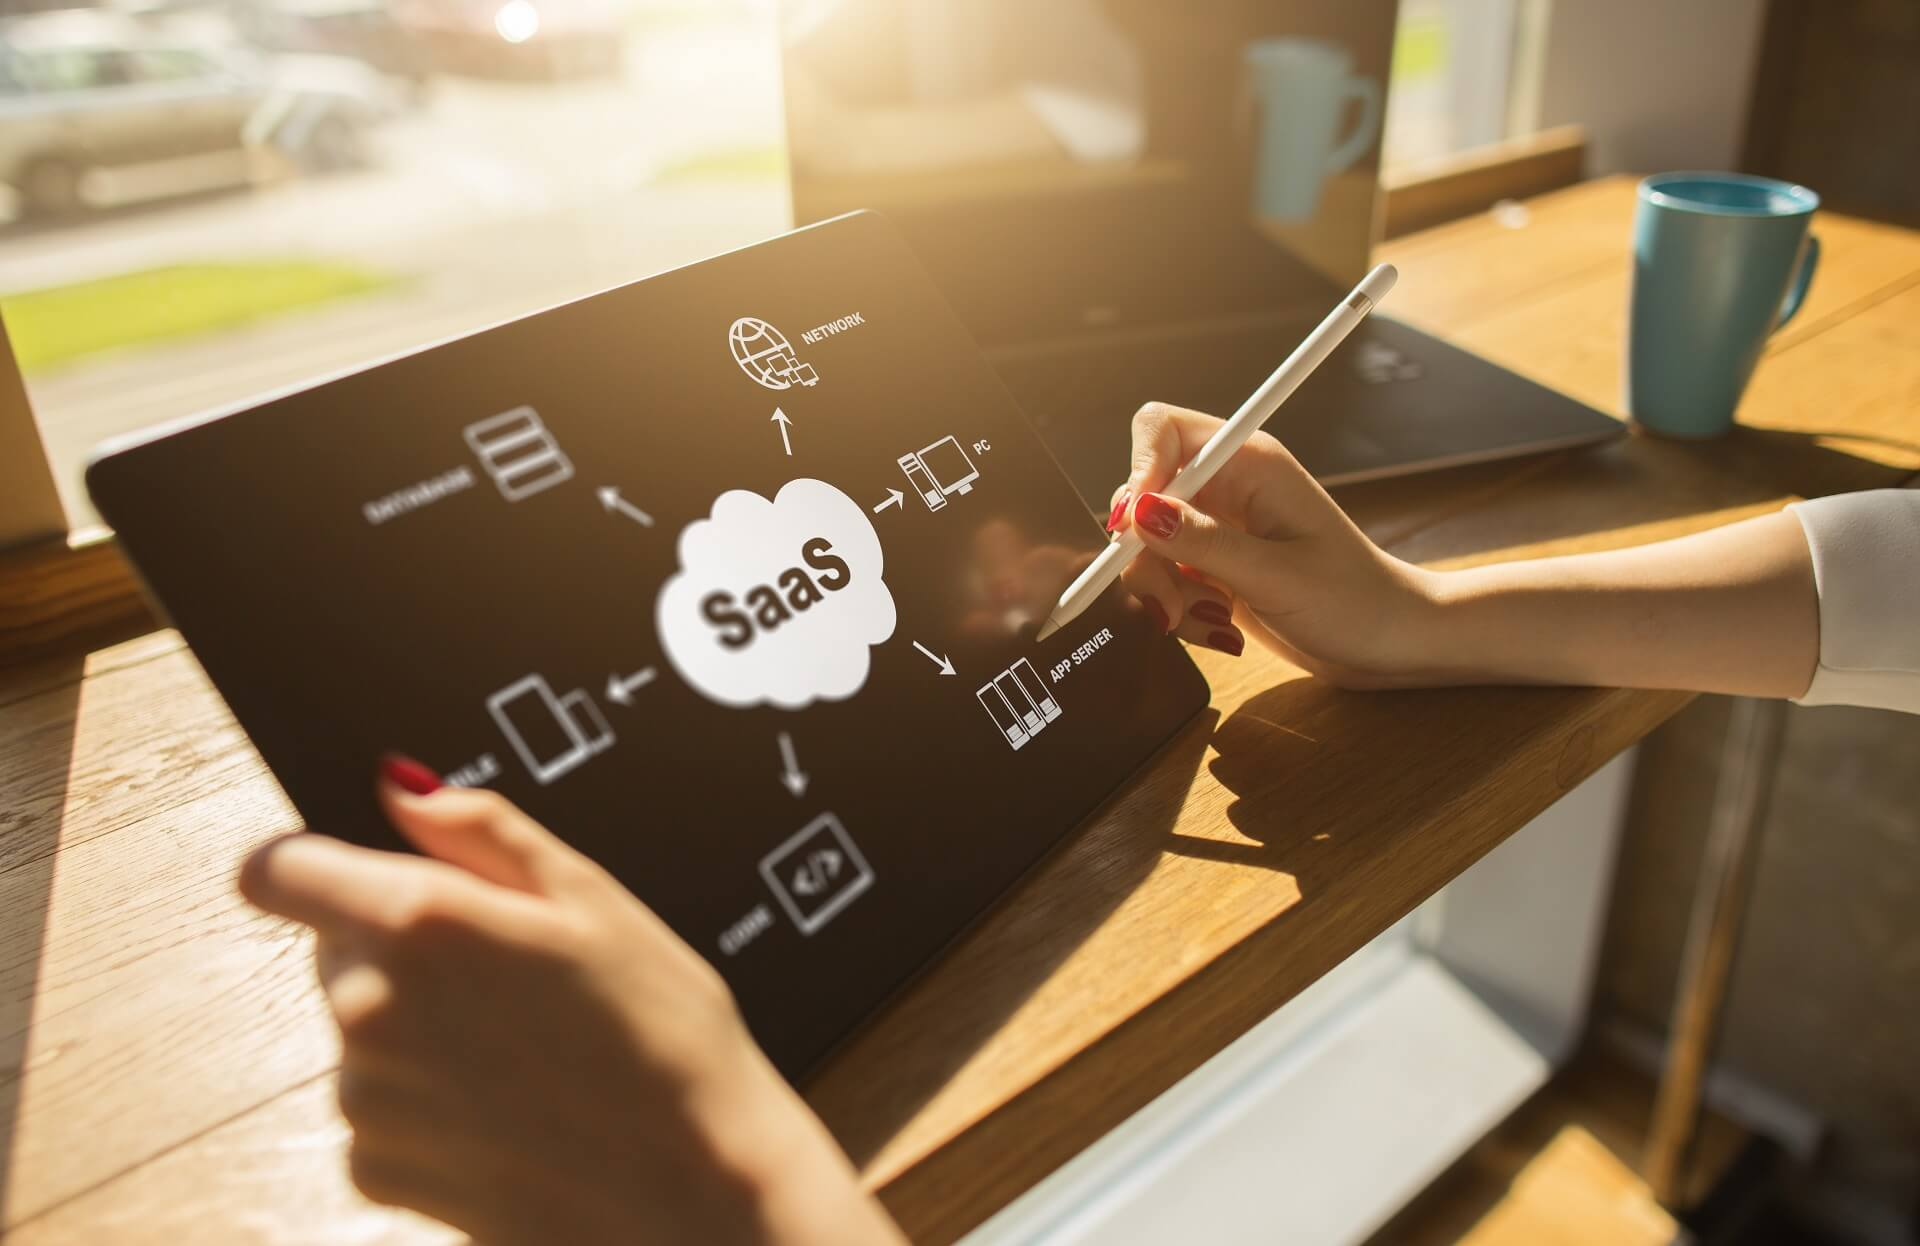 How SaaS is coming up as a growing opportunity?